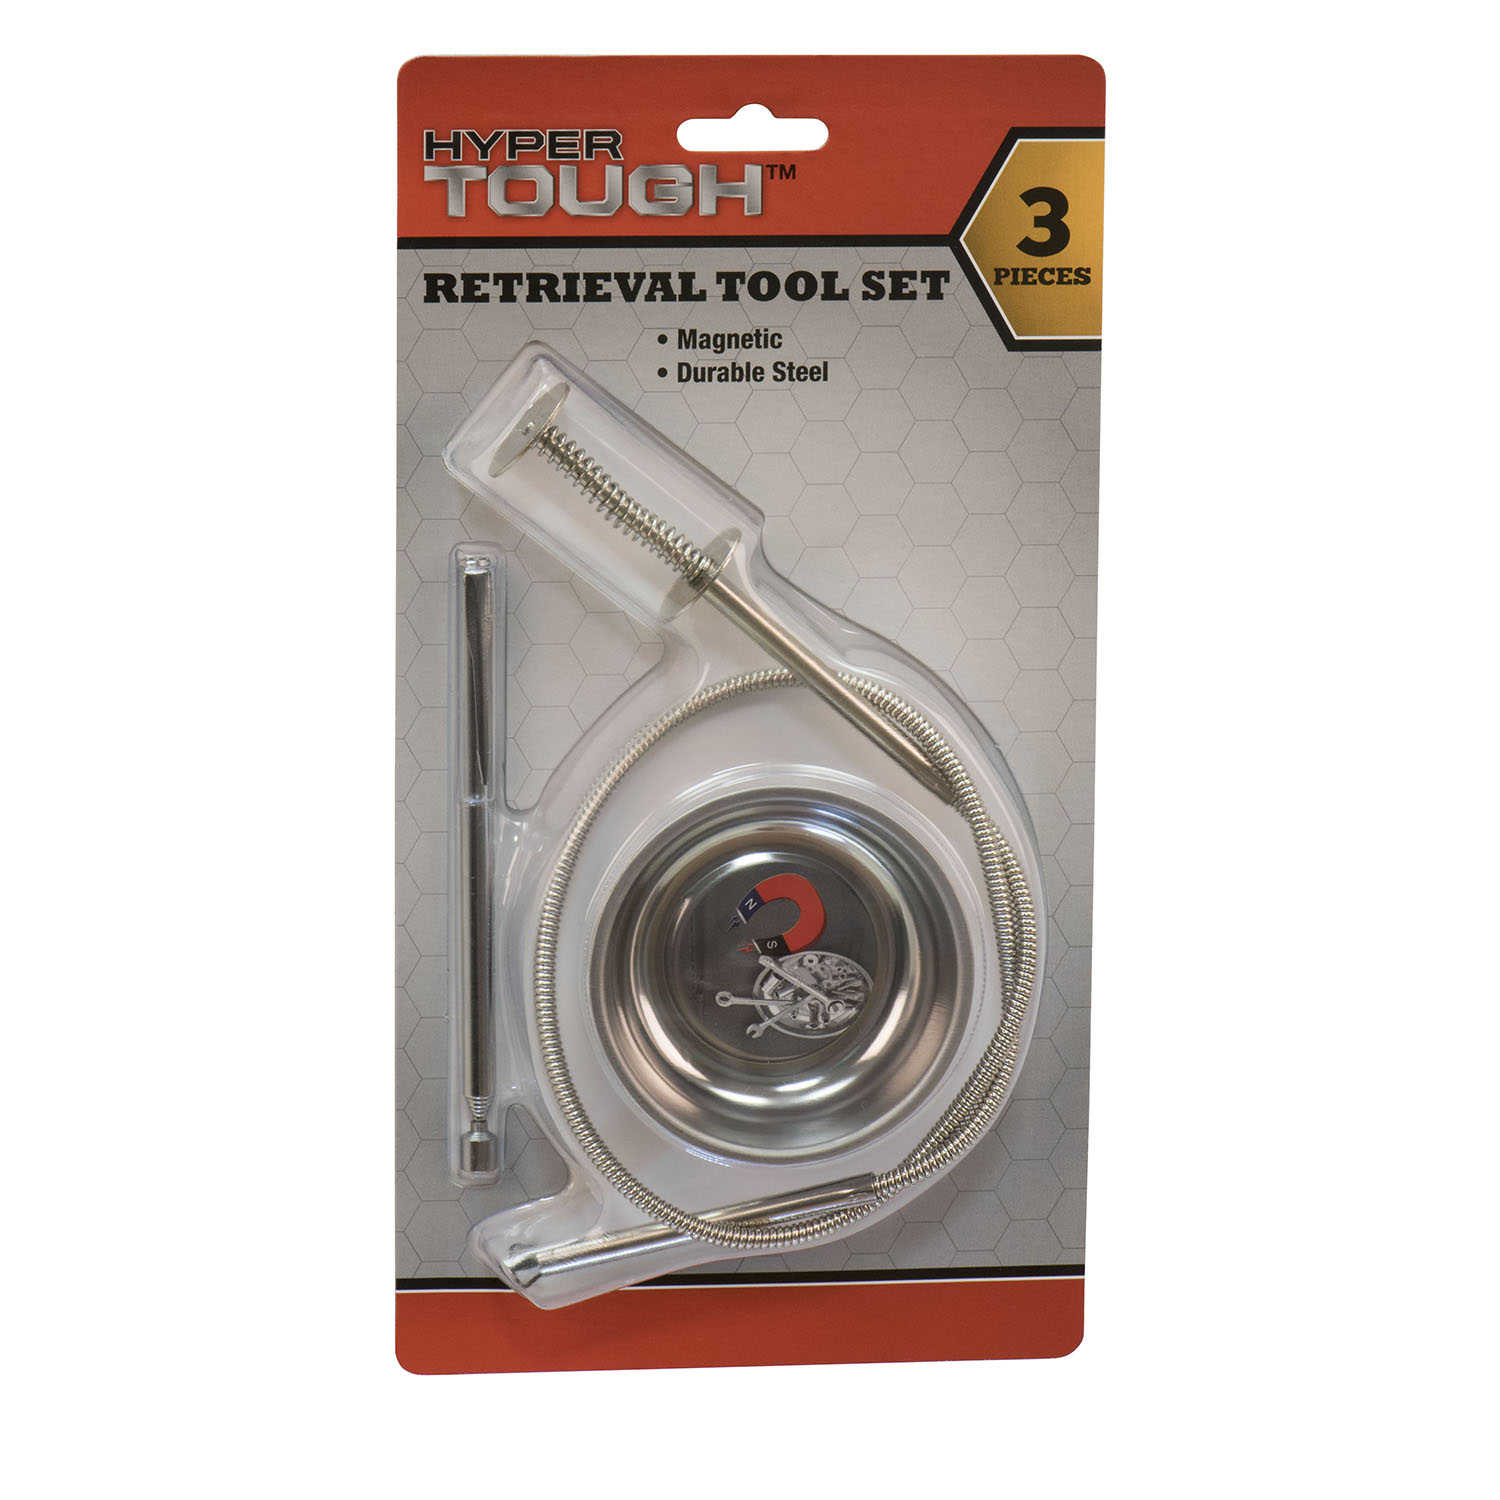 Hyper Tough Retrieval Tool Set